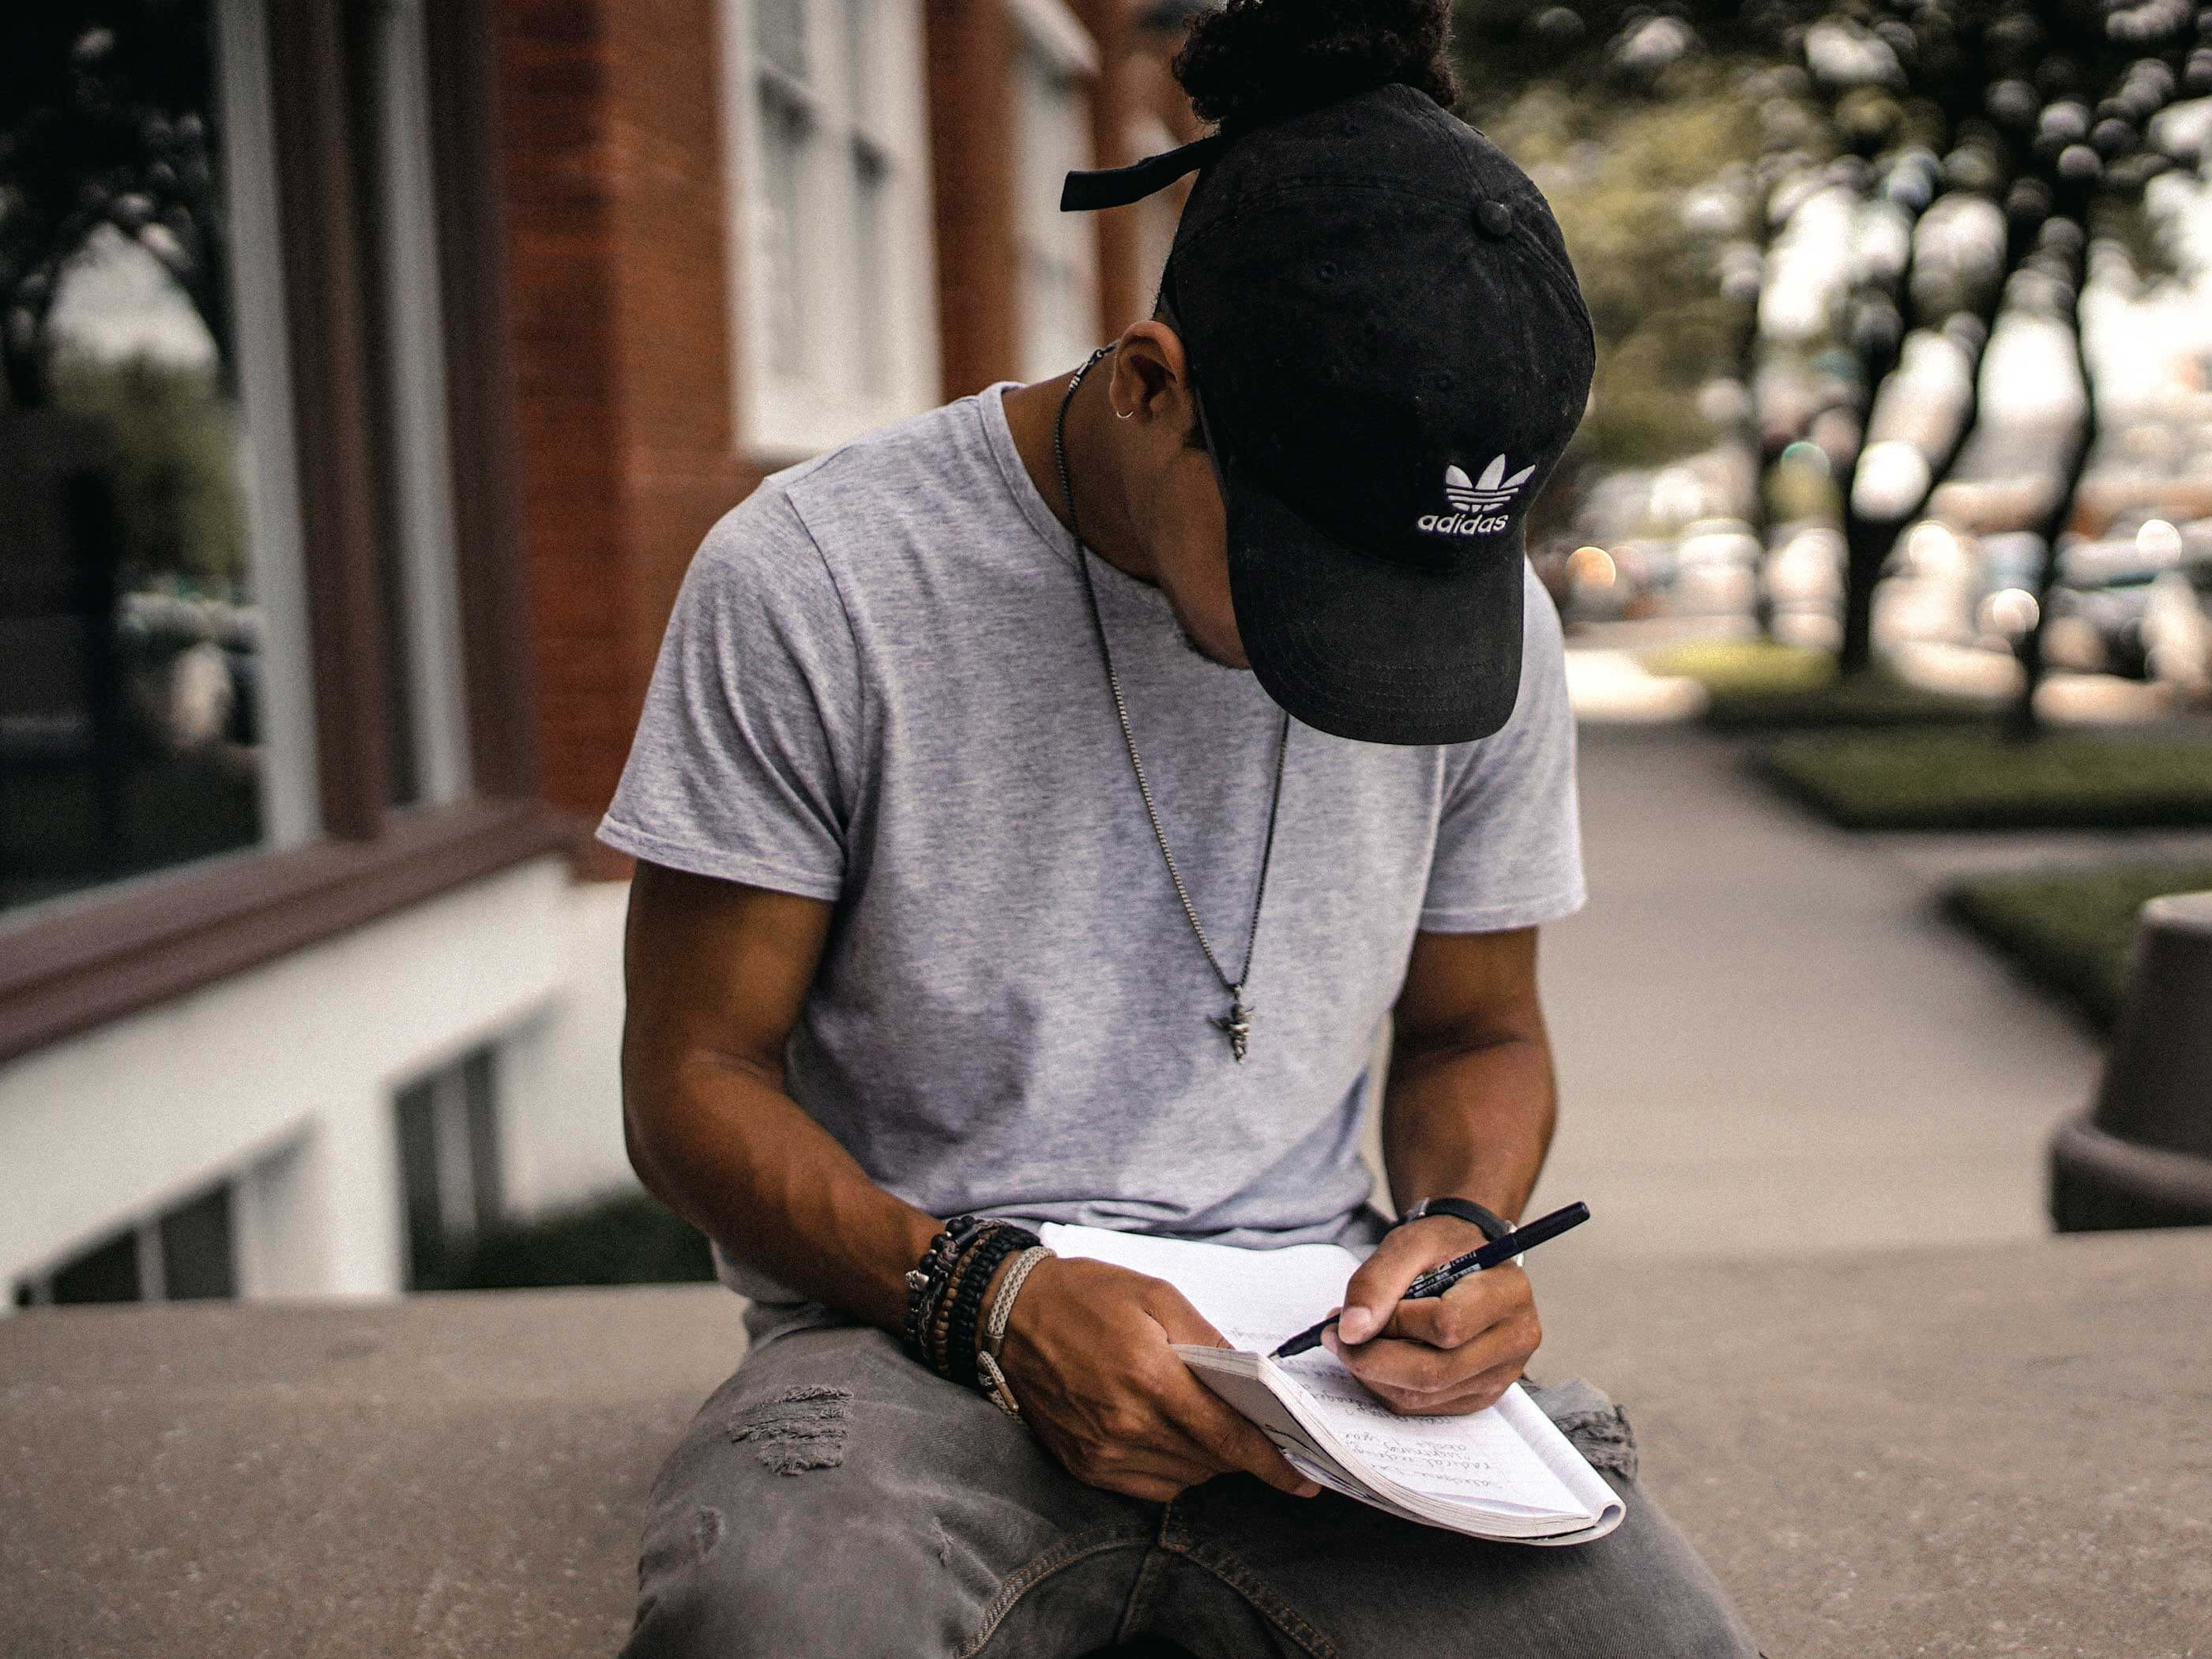 Young man takes notes outside a building